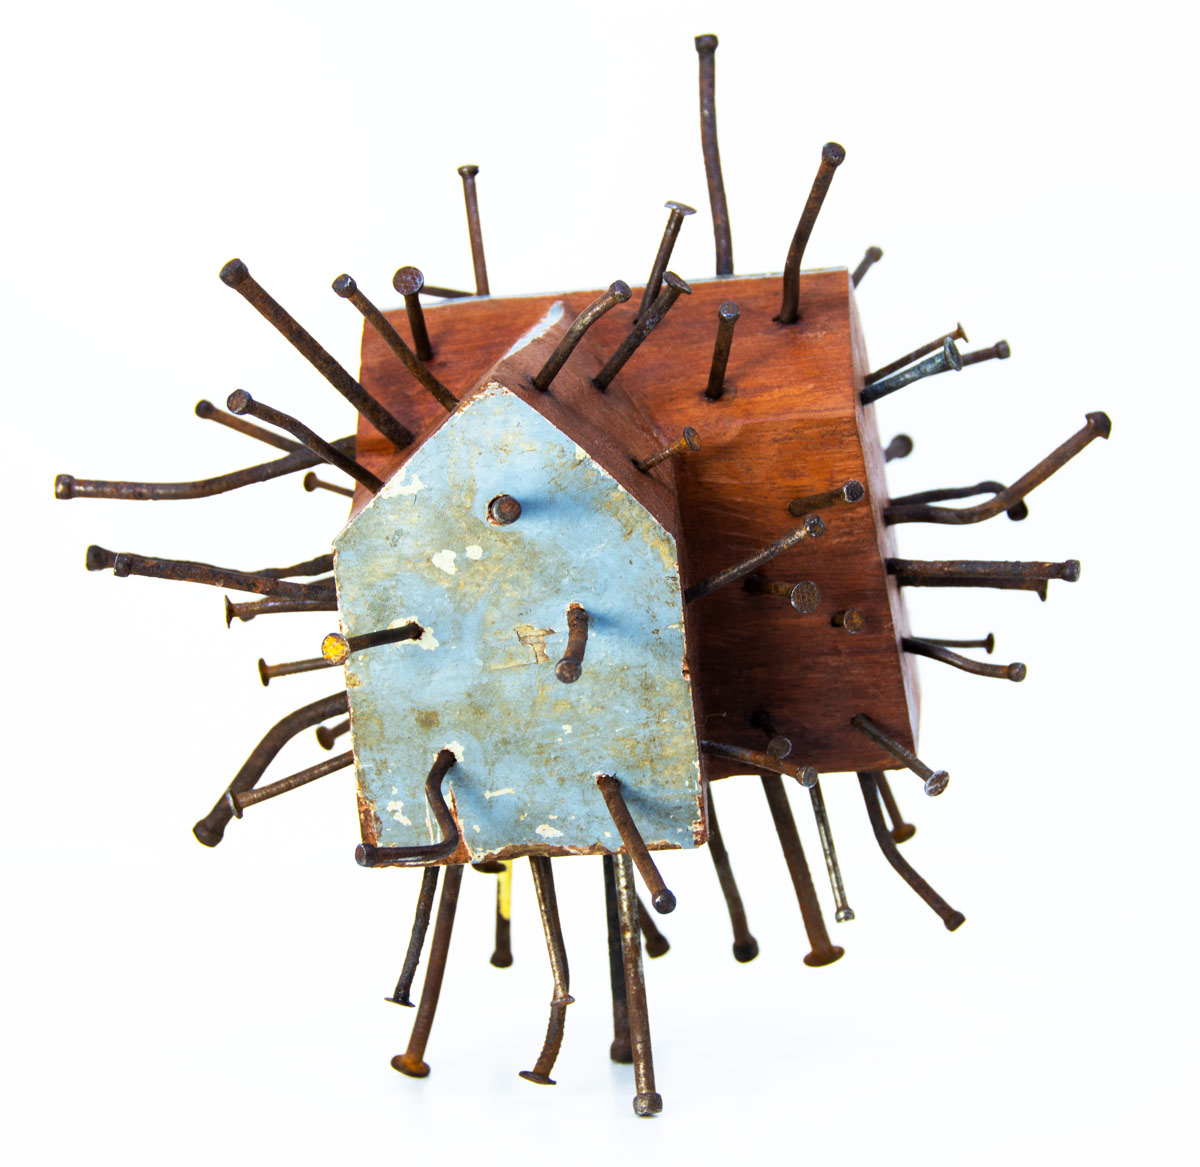 Wooden house sculpture pierced with nails by Ingrid K Brooker